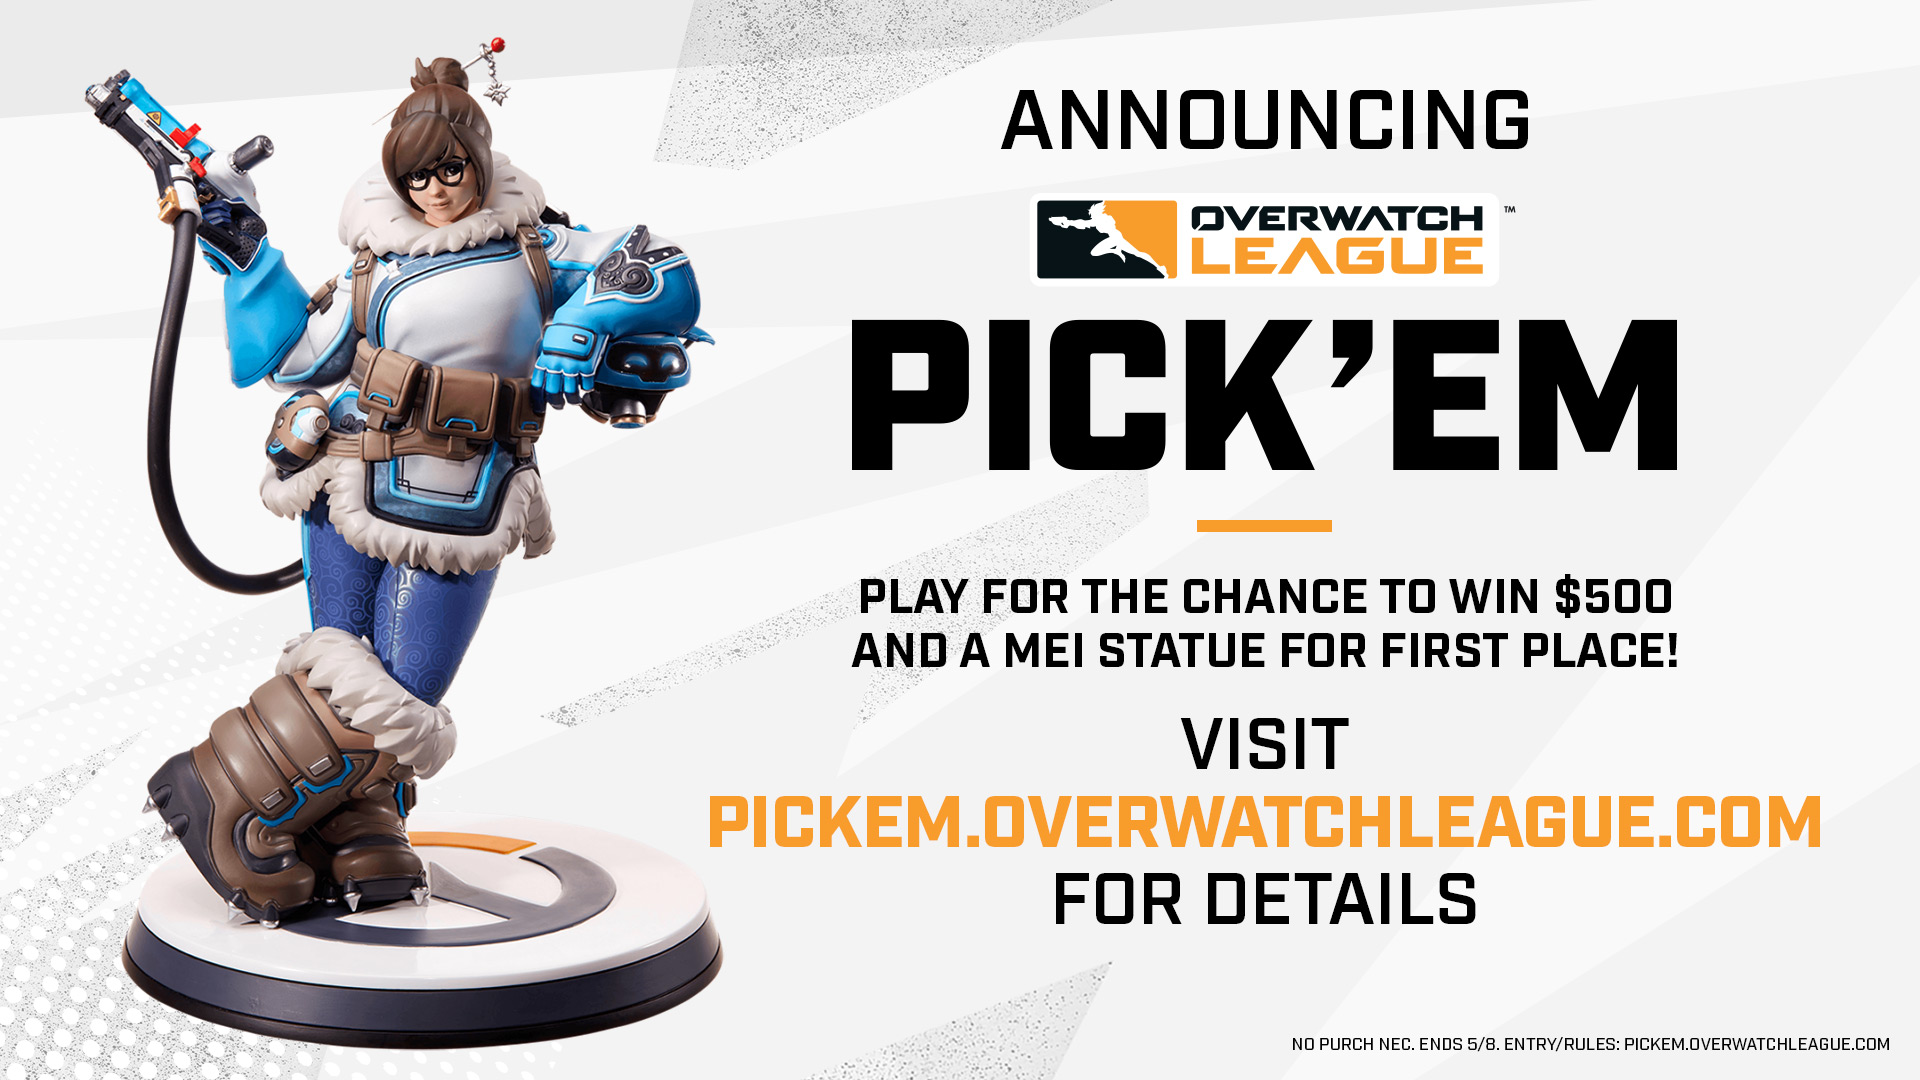 """Overwatch League on Twitter: """"Think you've got the all-seeing eye? 👁 Put your predictions to the test with #OWL2021 Pick'em! Pick smart, win big ➡ https://t.co/4fdRVrO7ak… https://t.co/9C3UFgSVmf"""""""